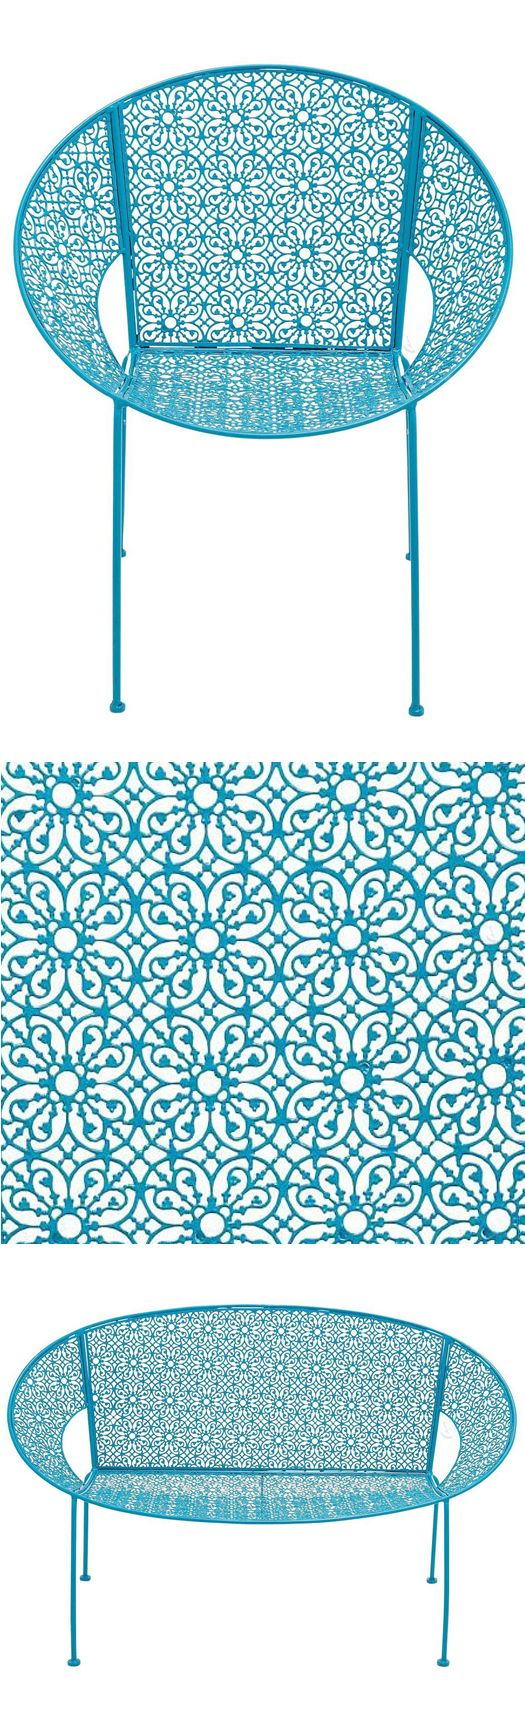 Blue outdoor chairs // love the stamped metal pattern #furniture_design